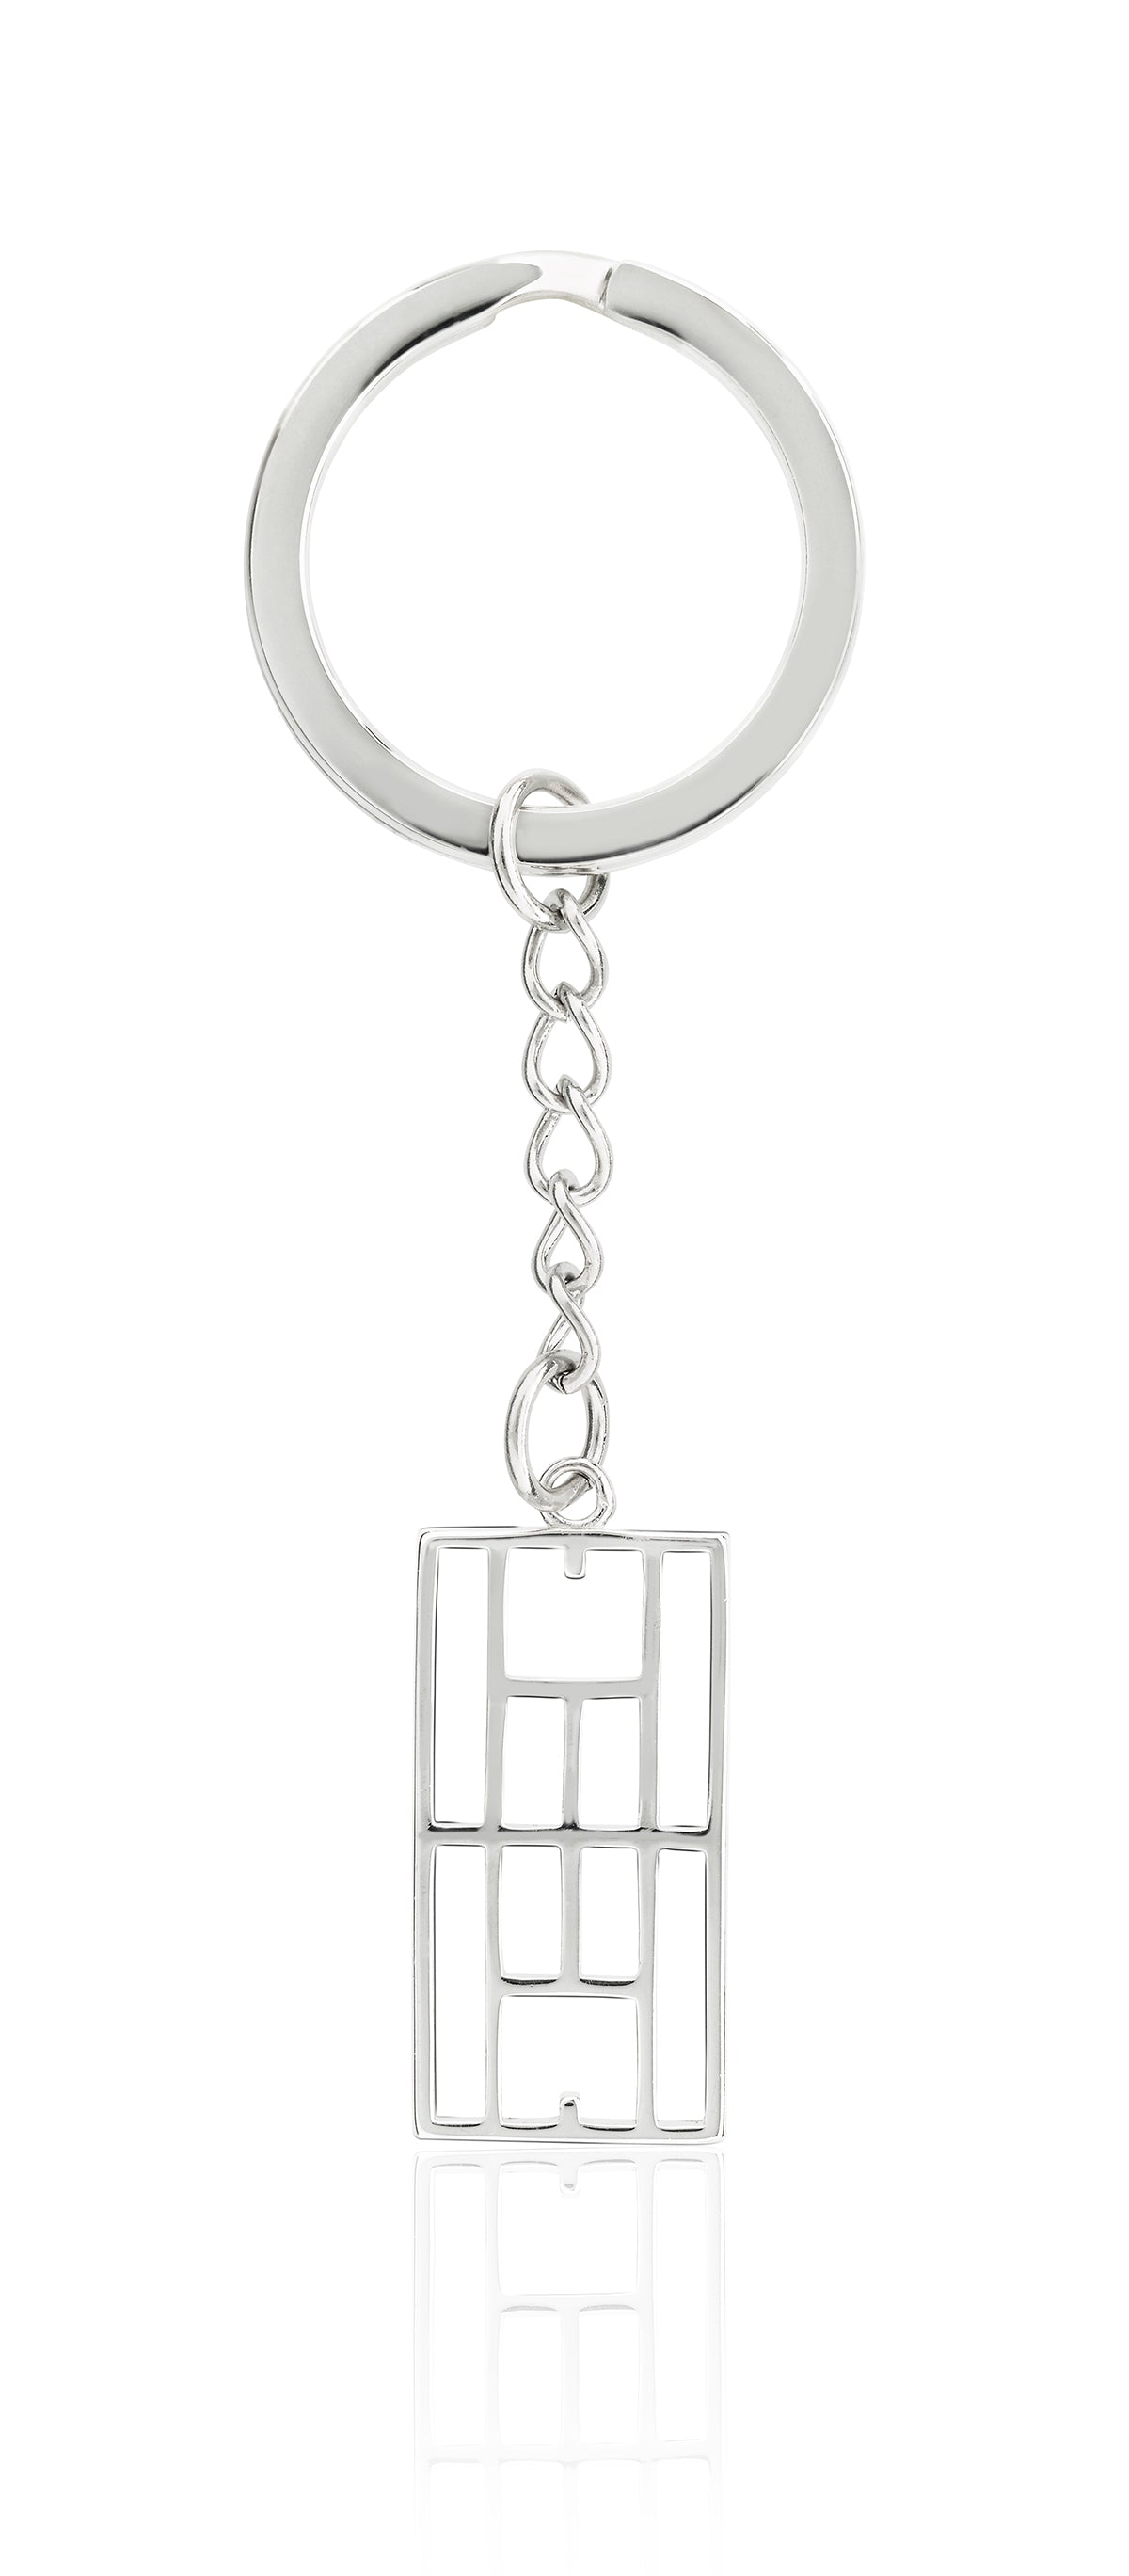 Calling the Lines Key Ring